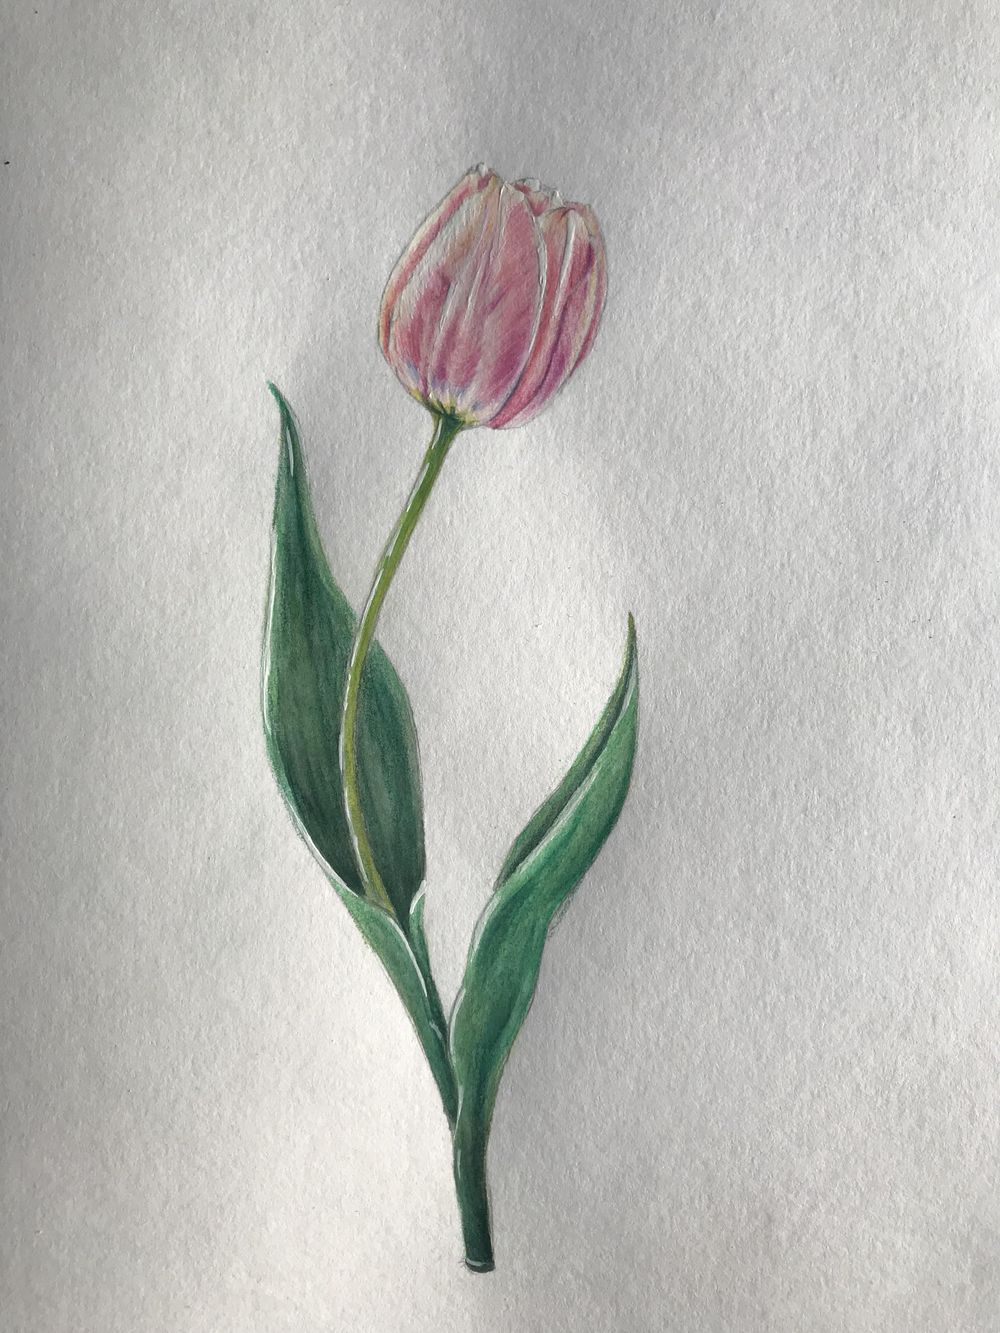 Light pink tulip - image 1 - student project